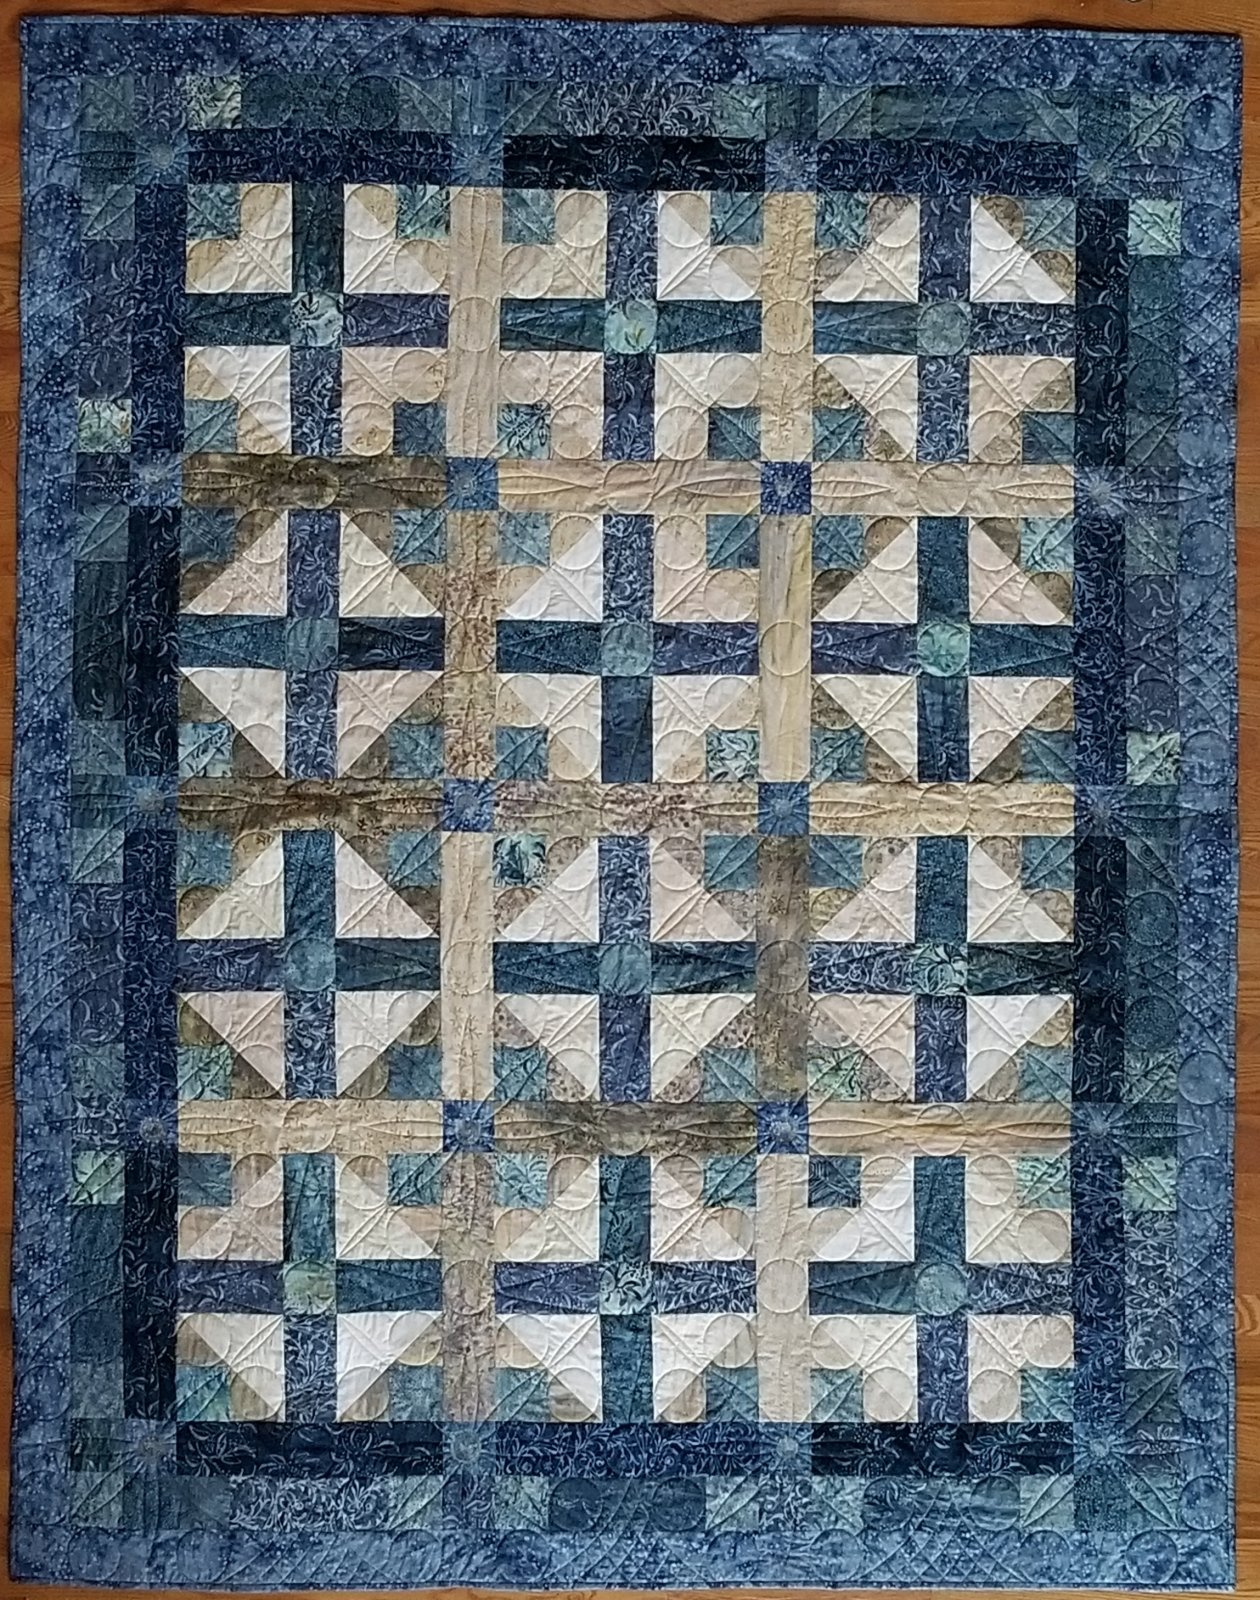 Quilt Sampler Fall 2019 Blue Oasis Fabric Kit